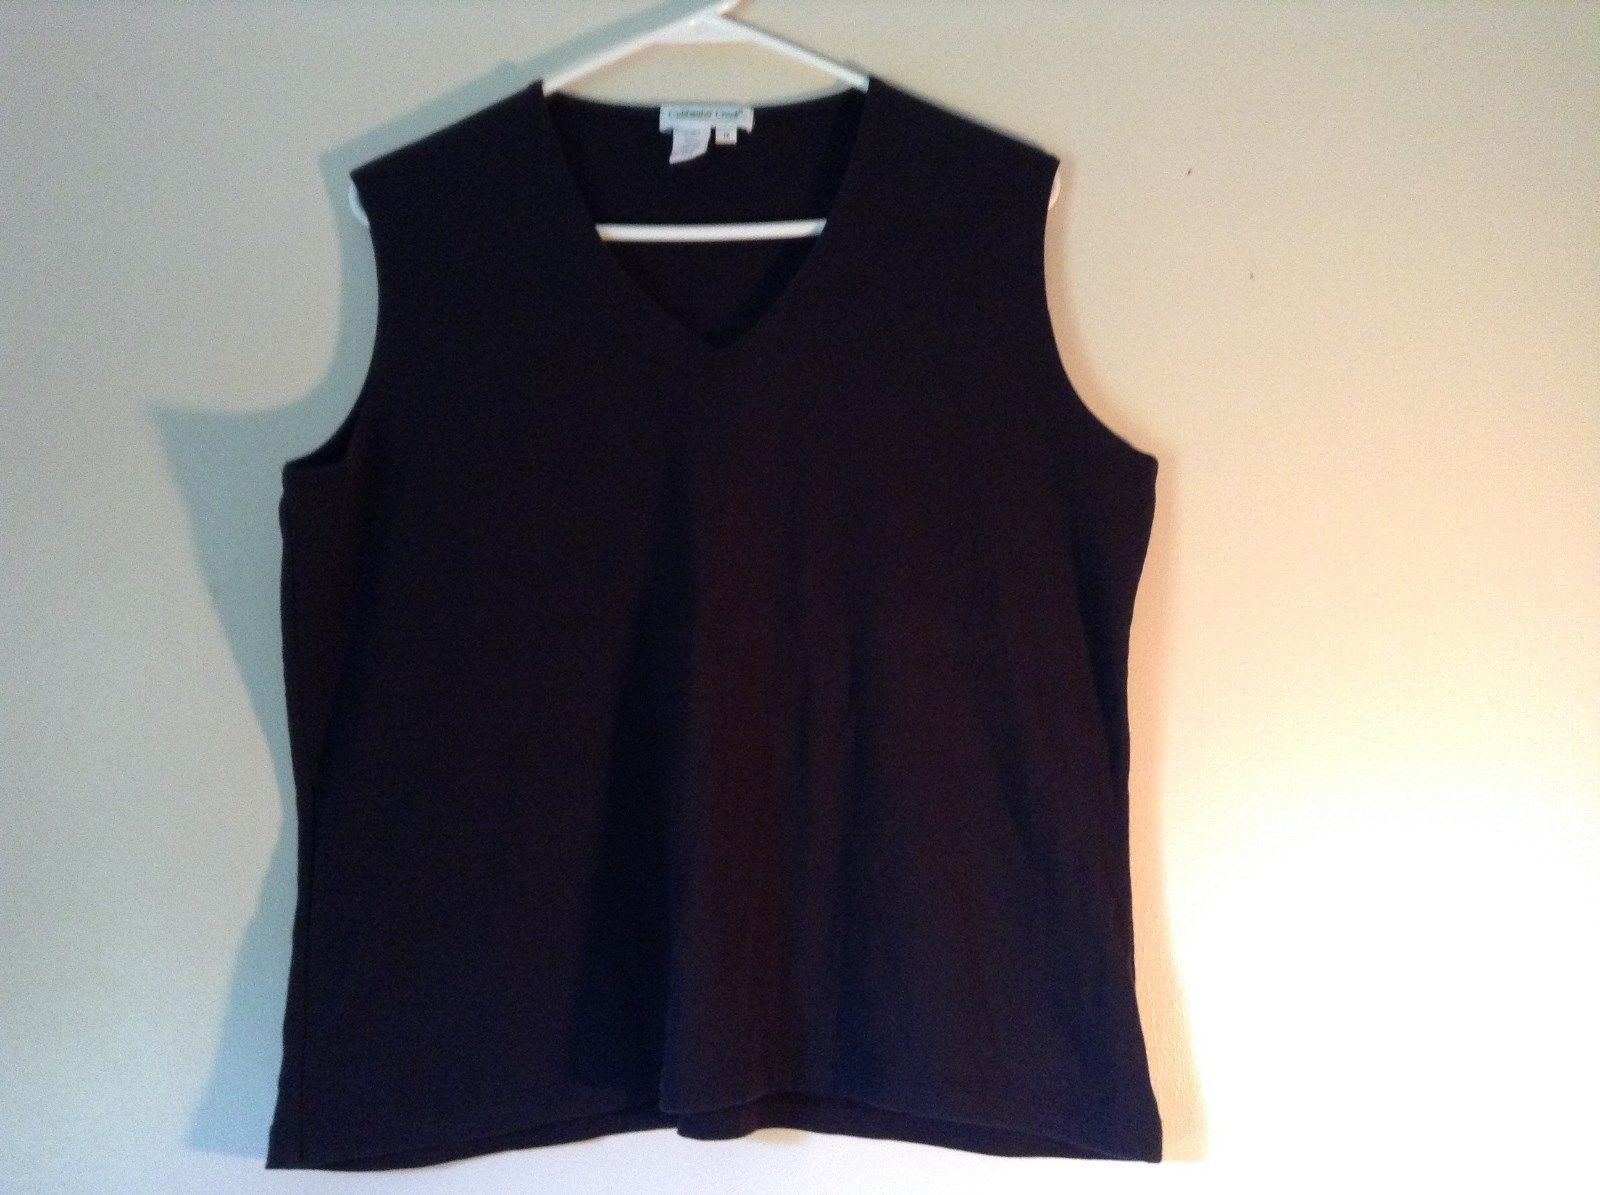 Coldwater Creek Black V Neck Sleeveless Shirt 100 Percent Cotton Size 1X